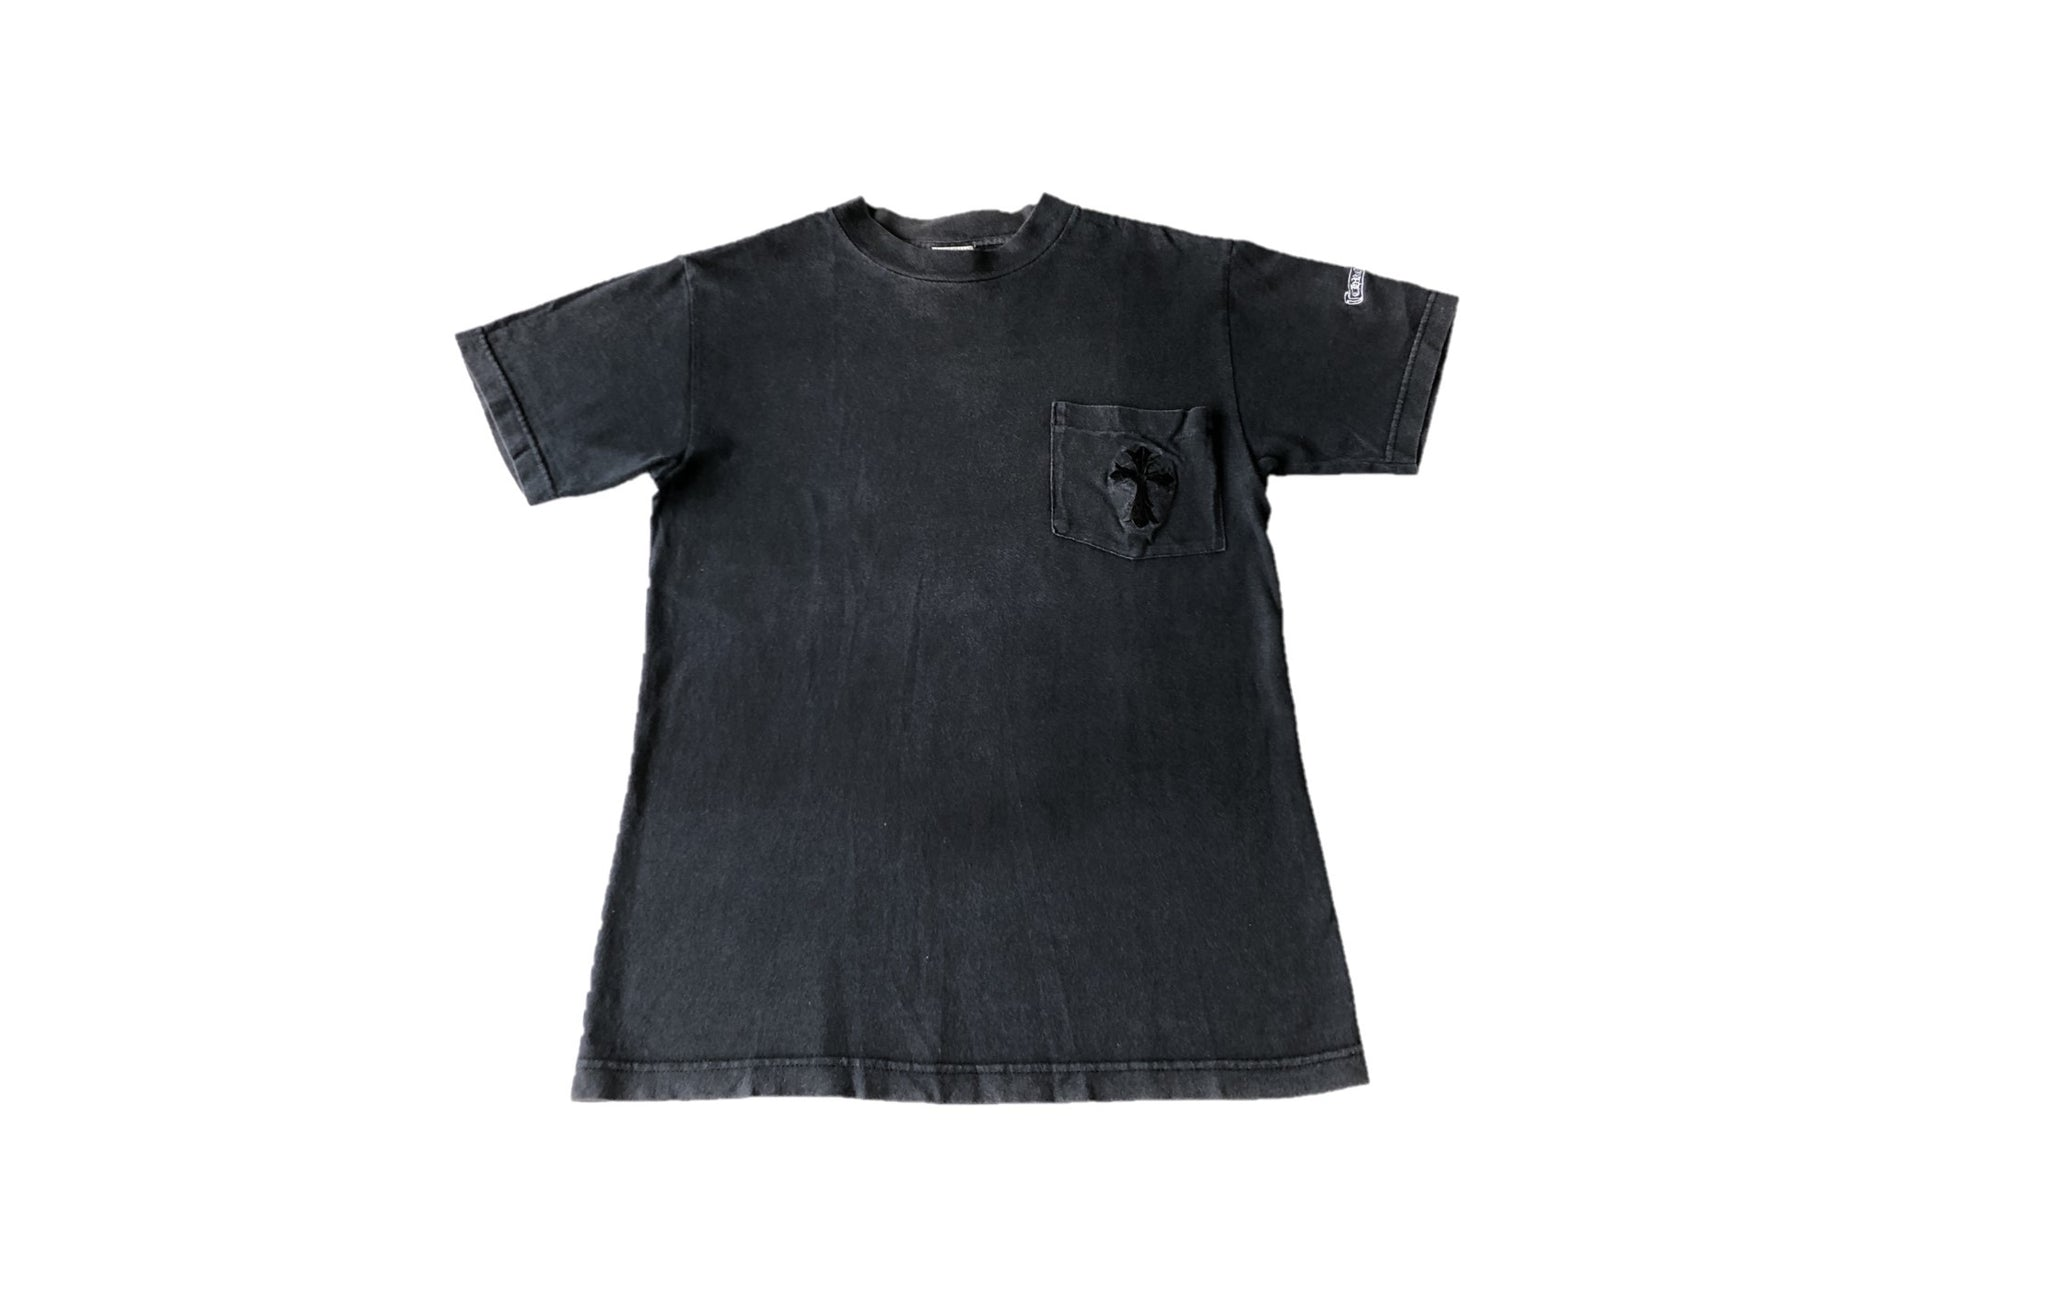 Chrome Hearts Cross Tee